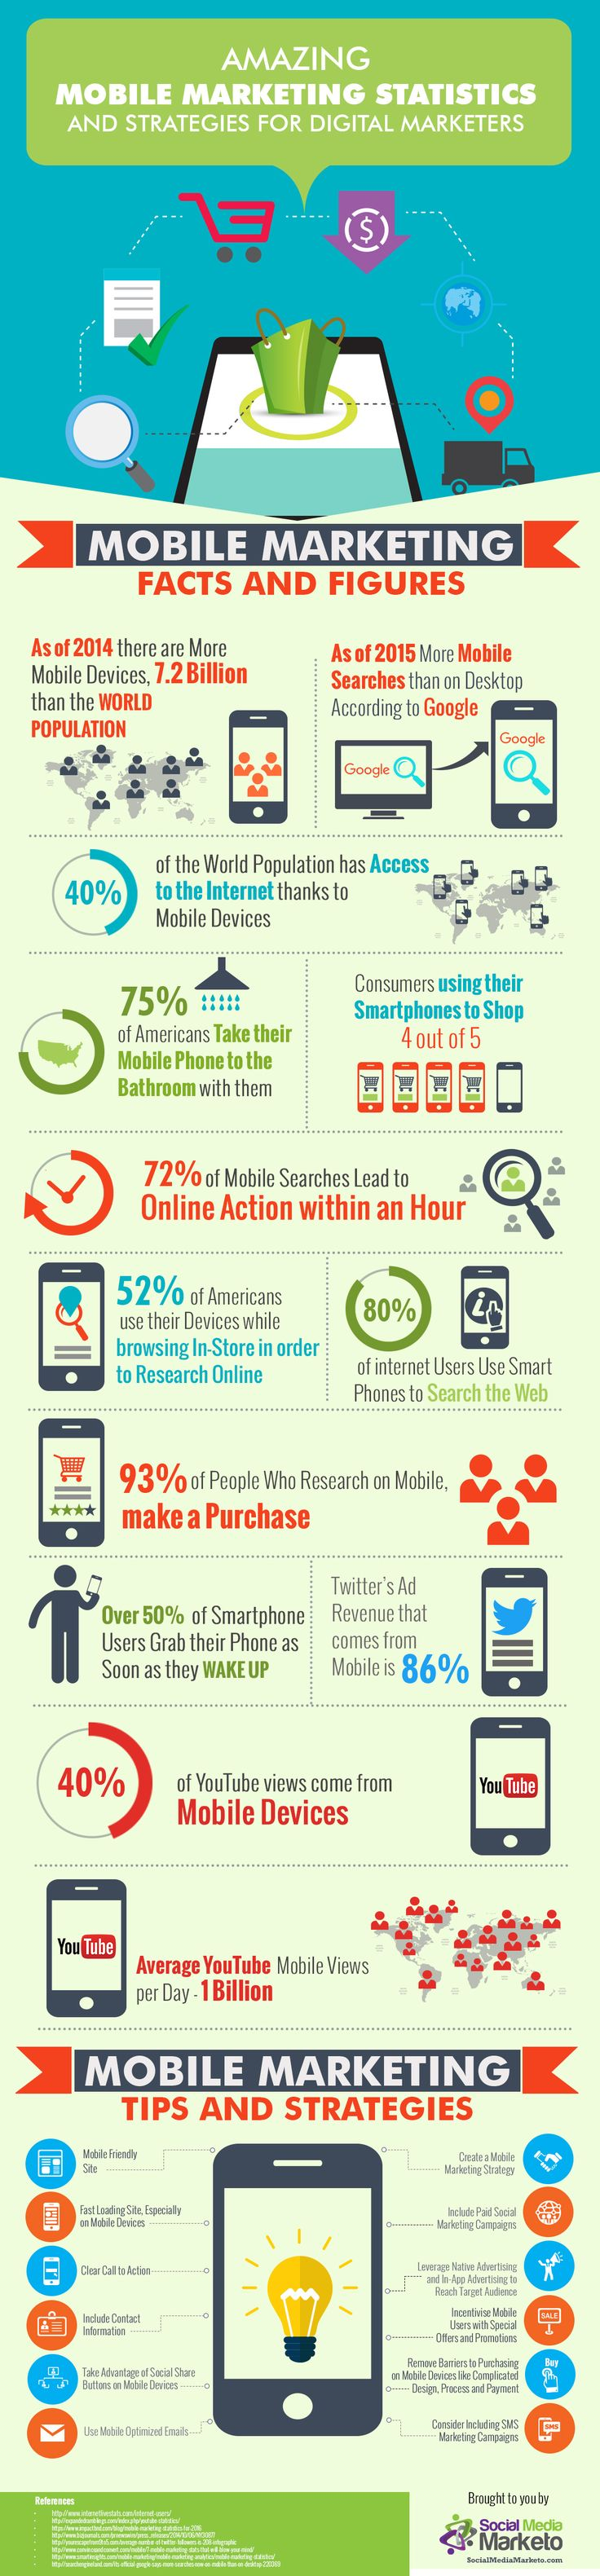 Amazing Mobile Marketing Strategy & Statistics for Digital Marketers - @b2community